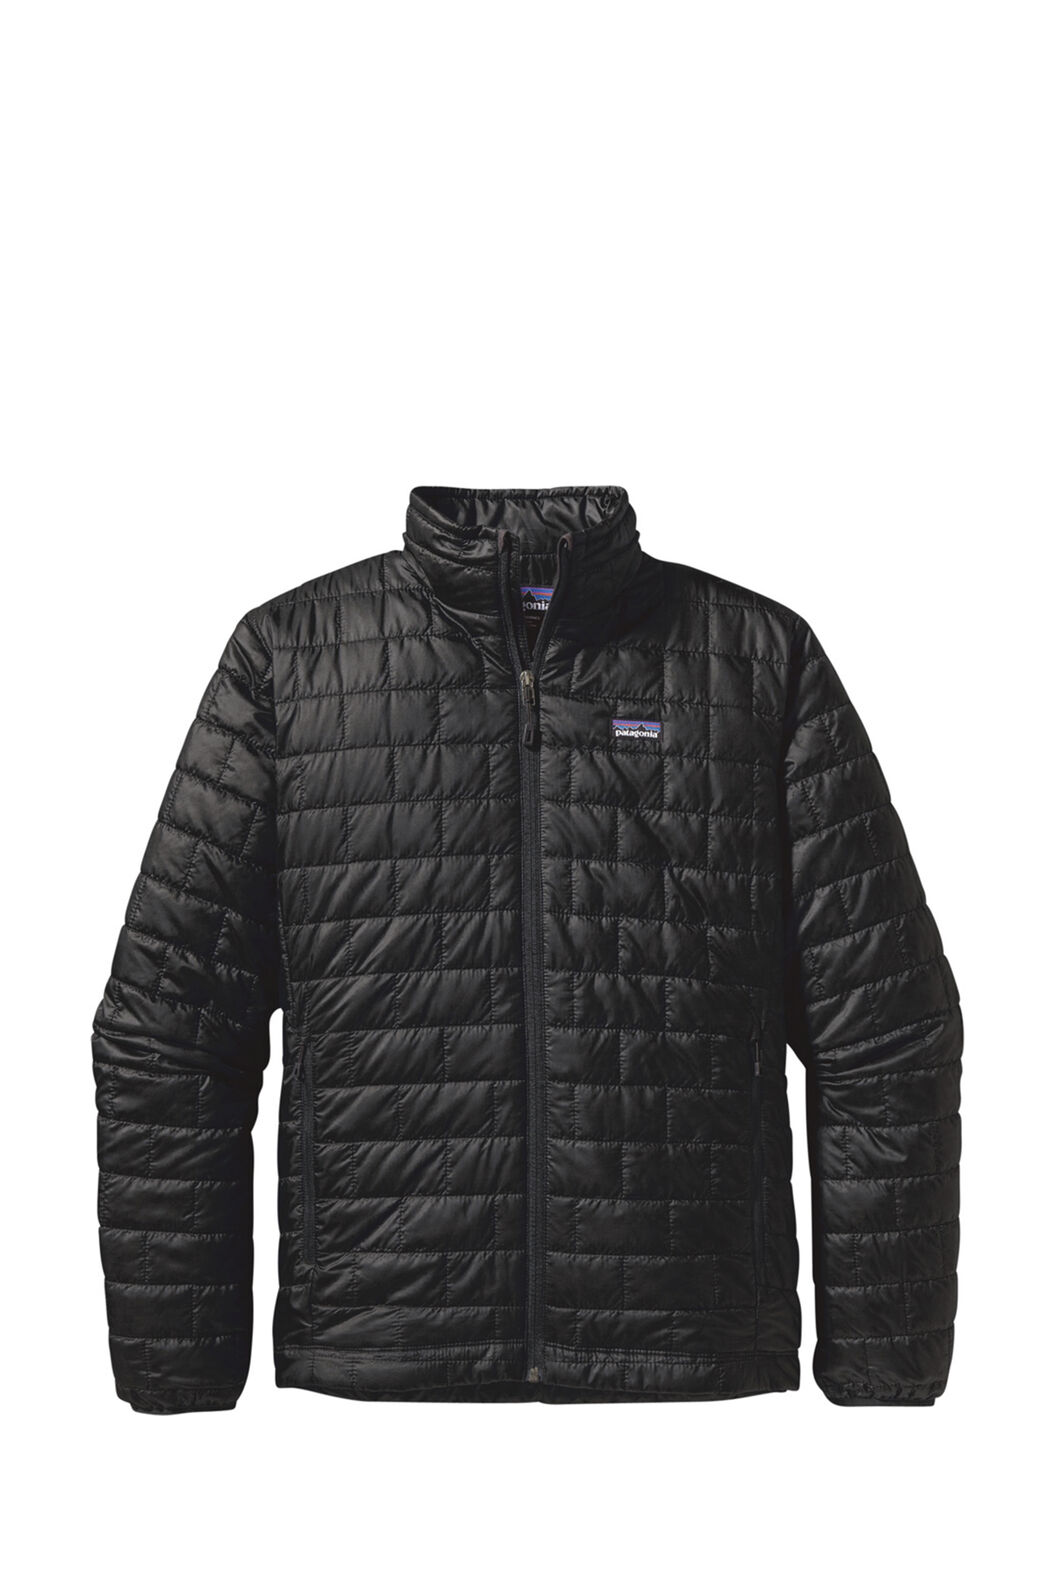 Patagonia Nano Puff Jacket — Men's, Black, hi-res